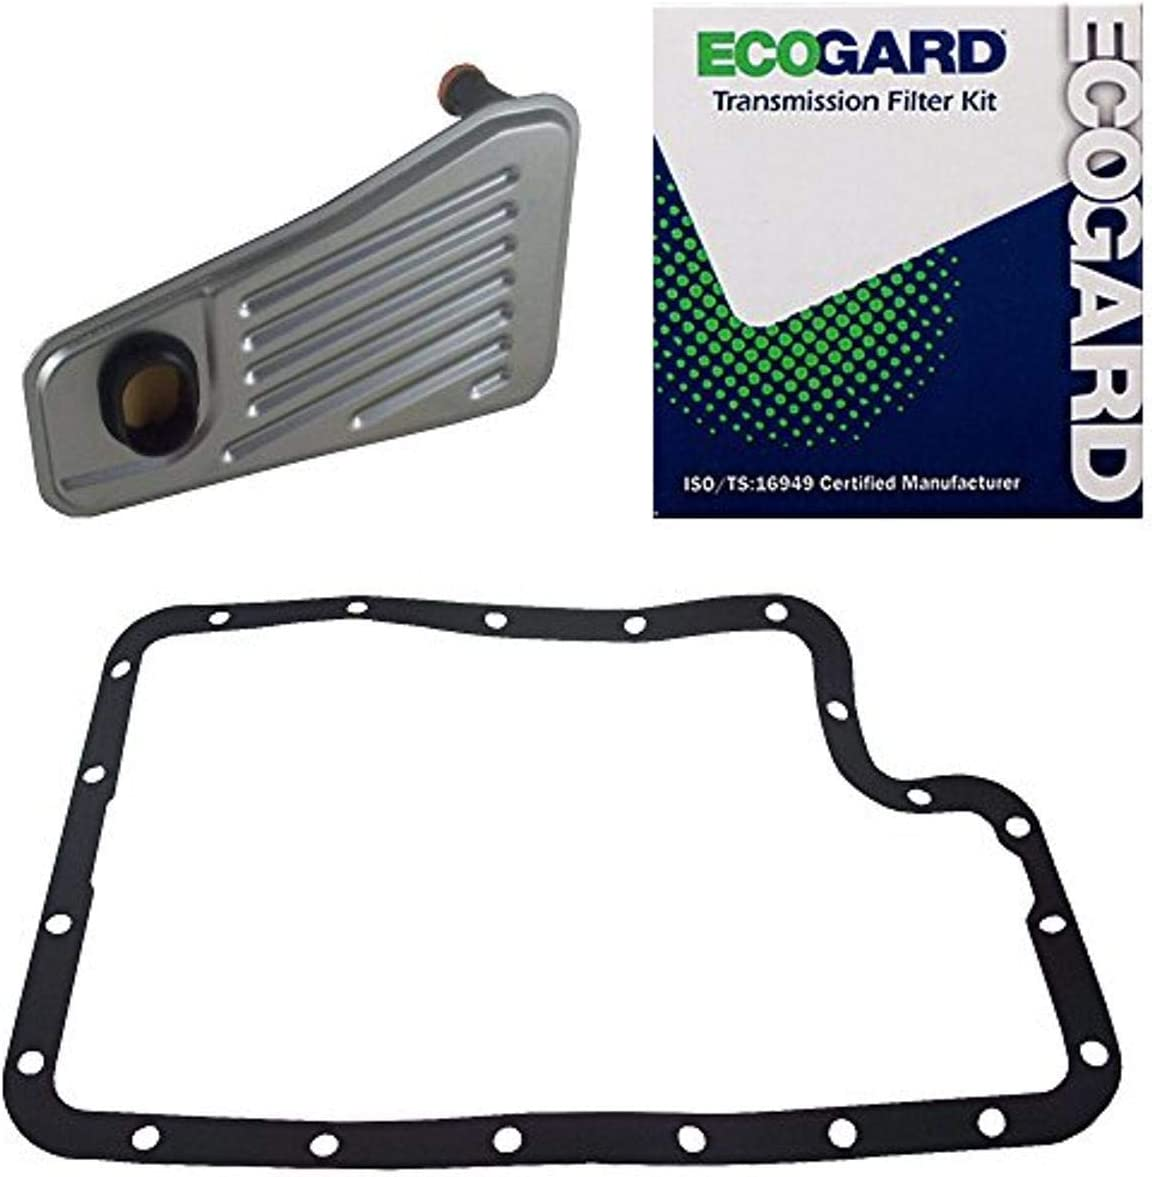 ECOGARD Weekly update Max 72% OFF XT1213 Premium Professional Automatic Filte Transmission